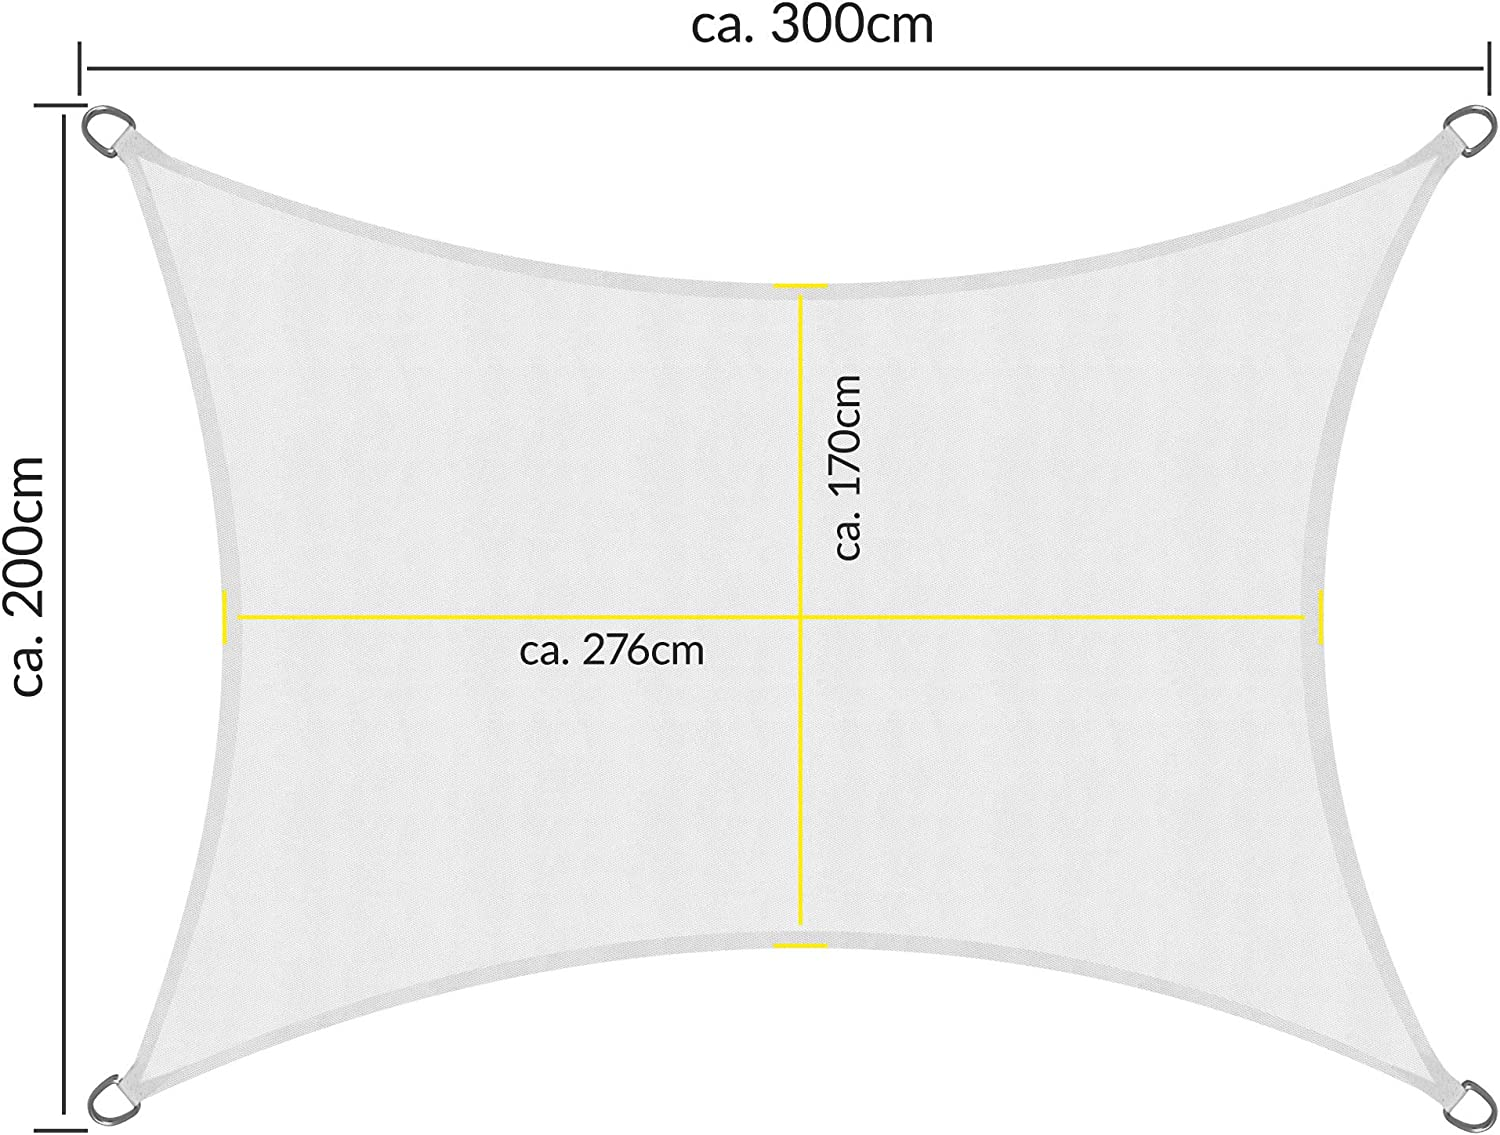 Sol Royal Garden Shade Sail SolVision Water Resistant UV Proof Protection Canopy Sun Sail Square 2 x 3 m Grey